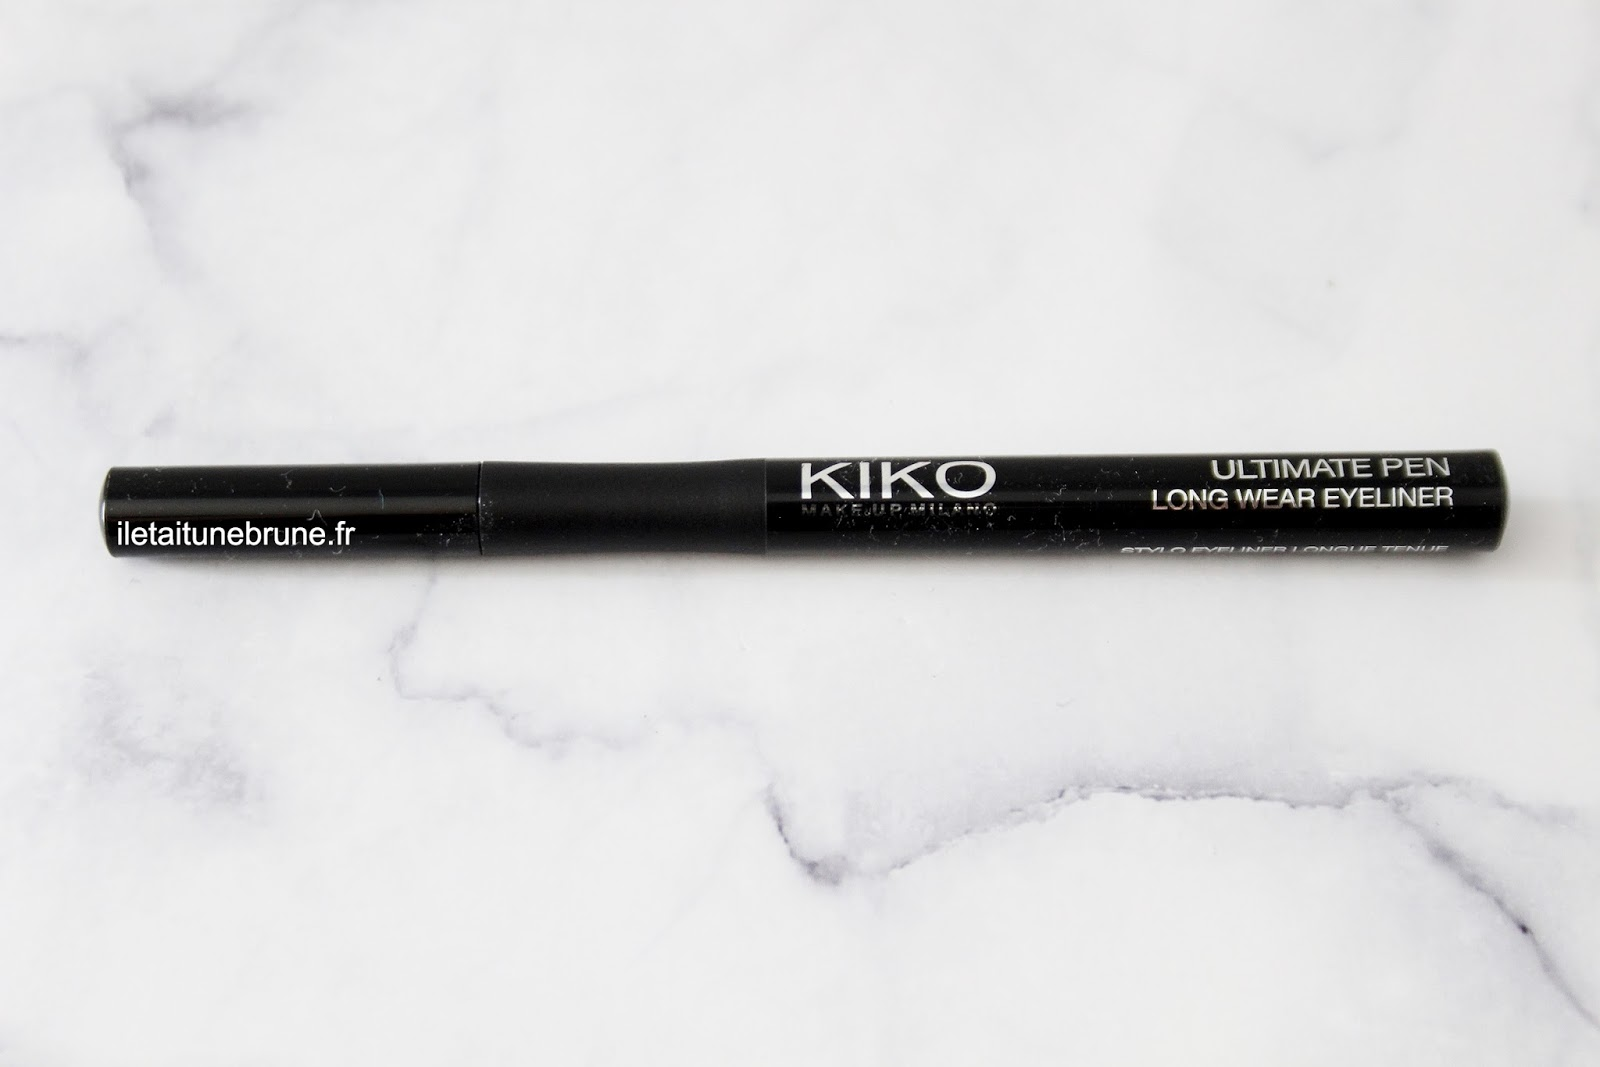 ultimate pen long wear eyeliner de kiko